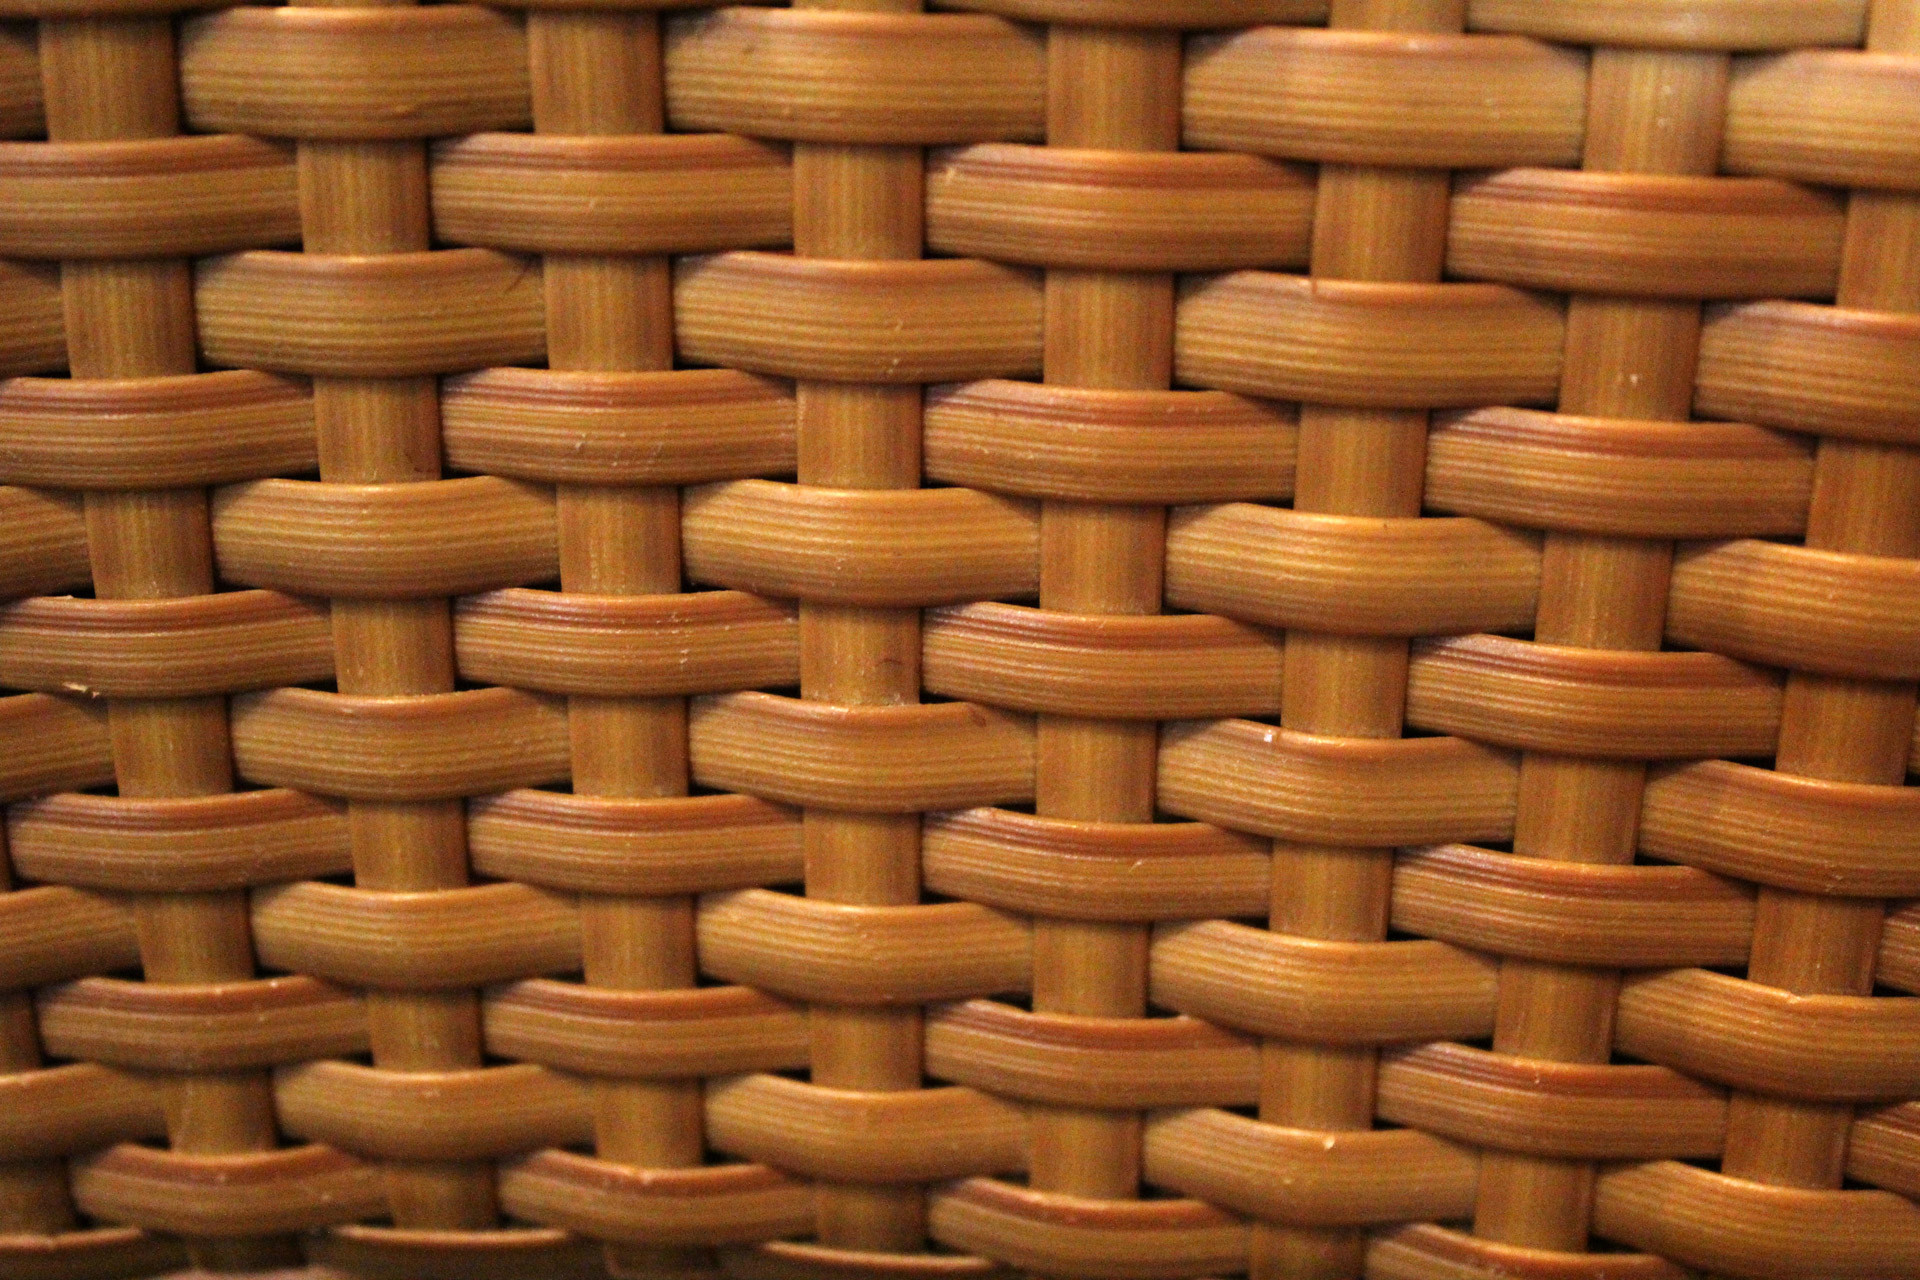 1920x1280 Knitted Bamboo Background 2